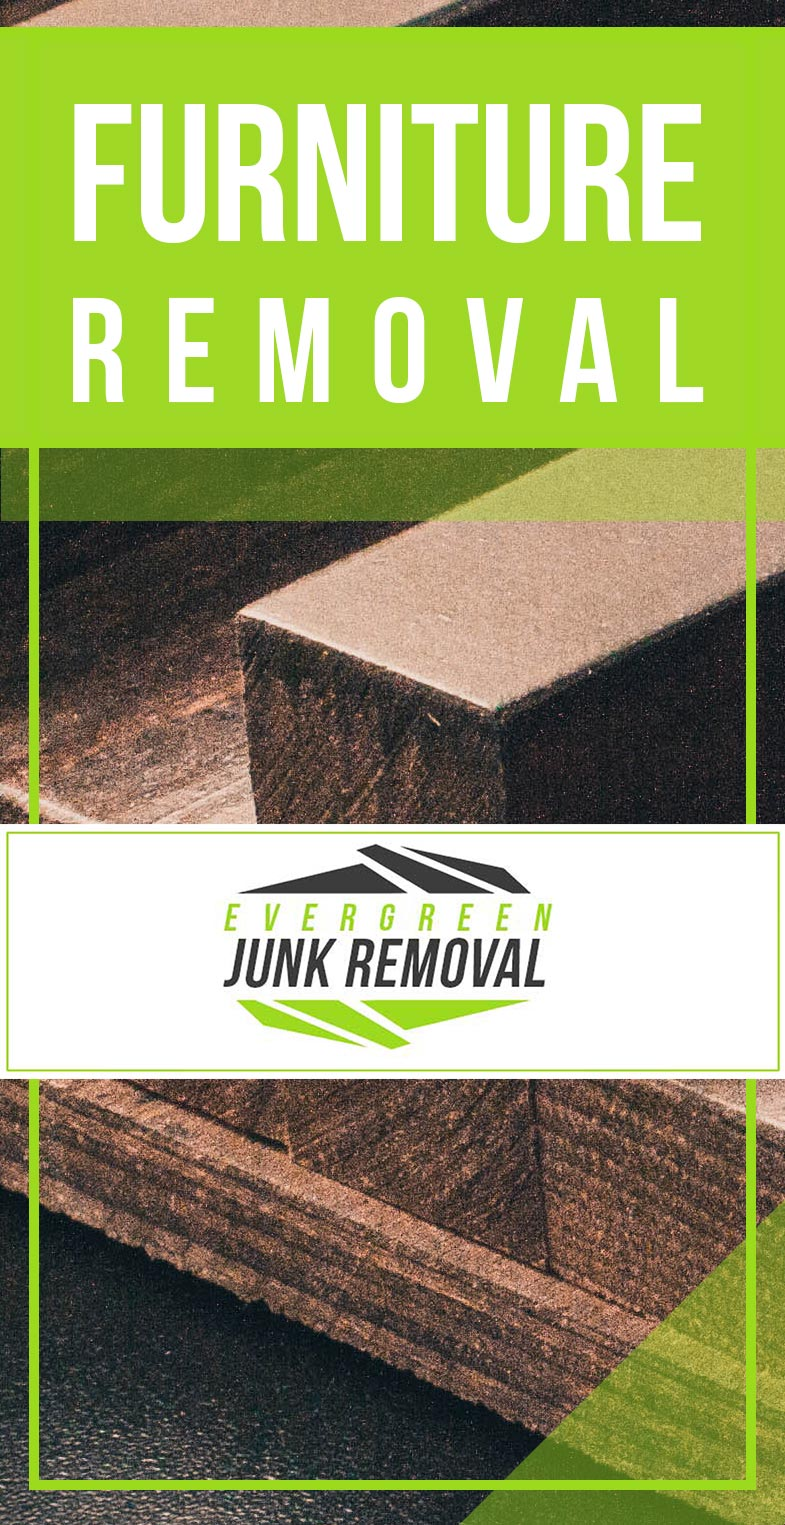 Junk Removal North Palm Beach Furniture Removal